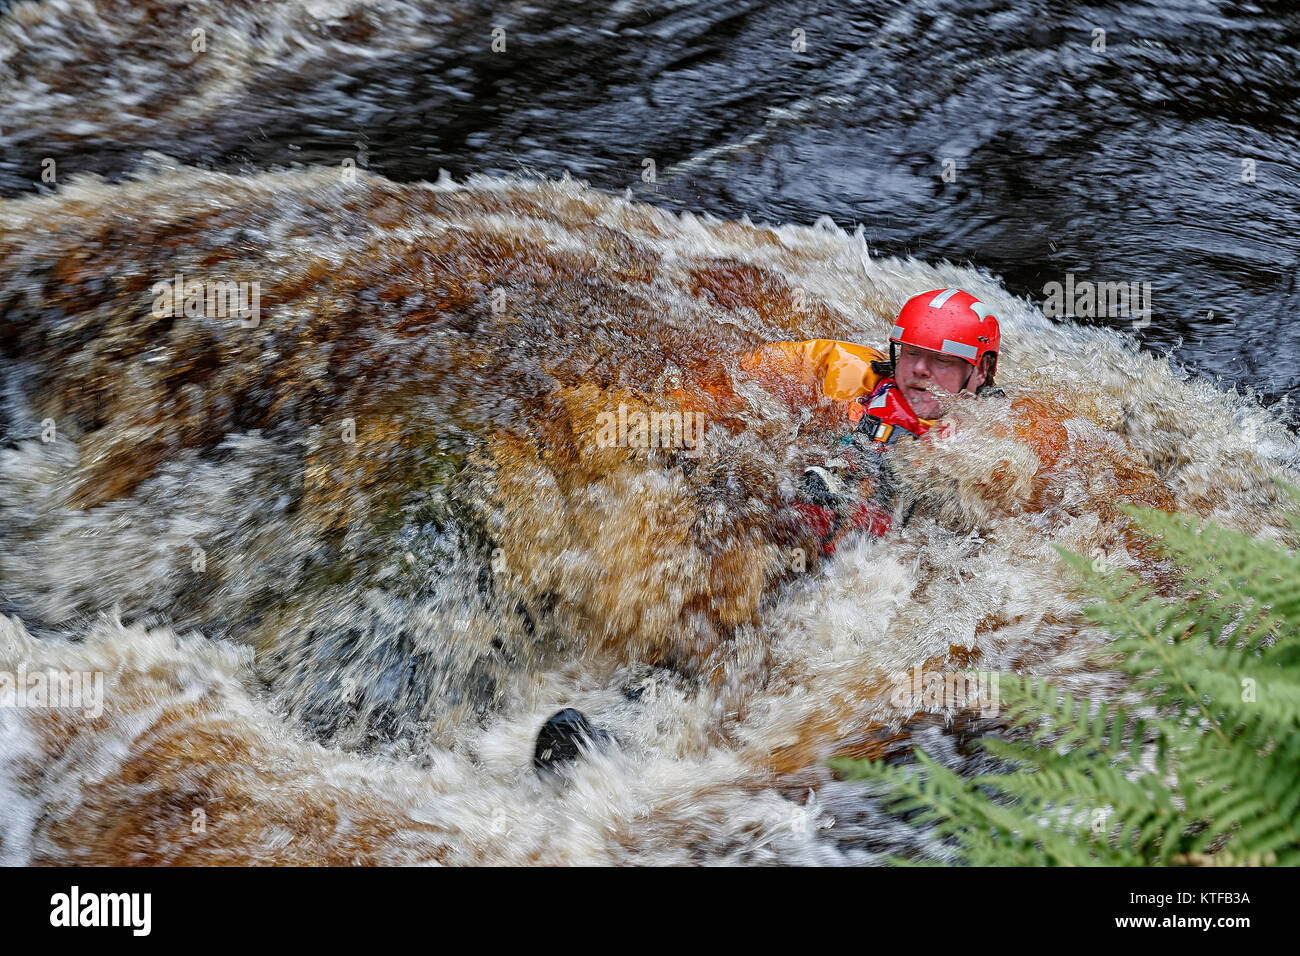 Upper Wharfedale Fell Rescue Association Swift Water Team member taking part in a training exercise in the fast - Stock Image